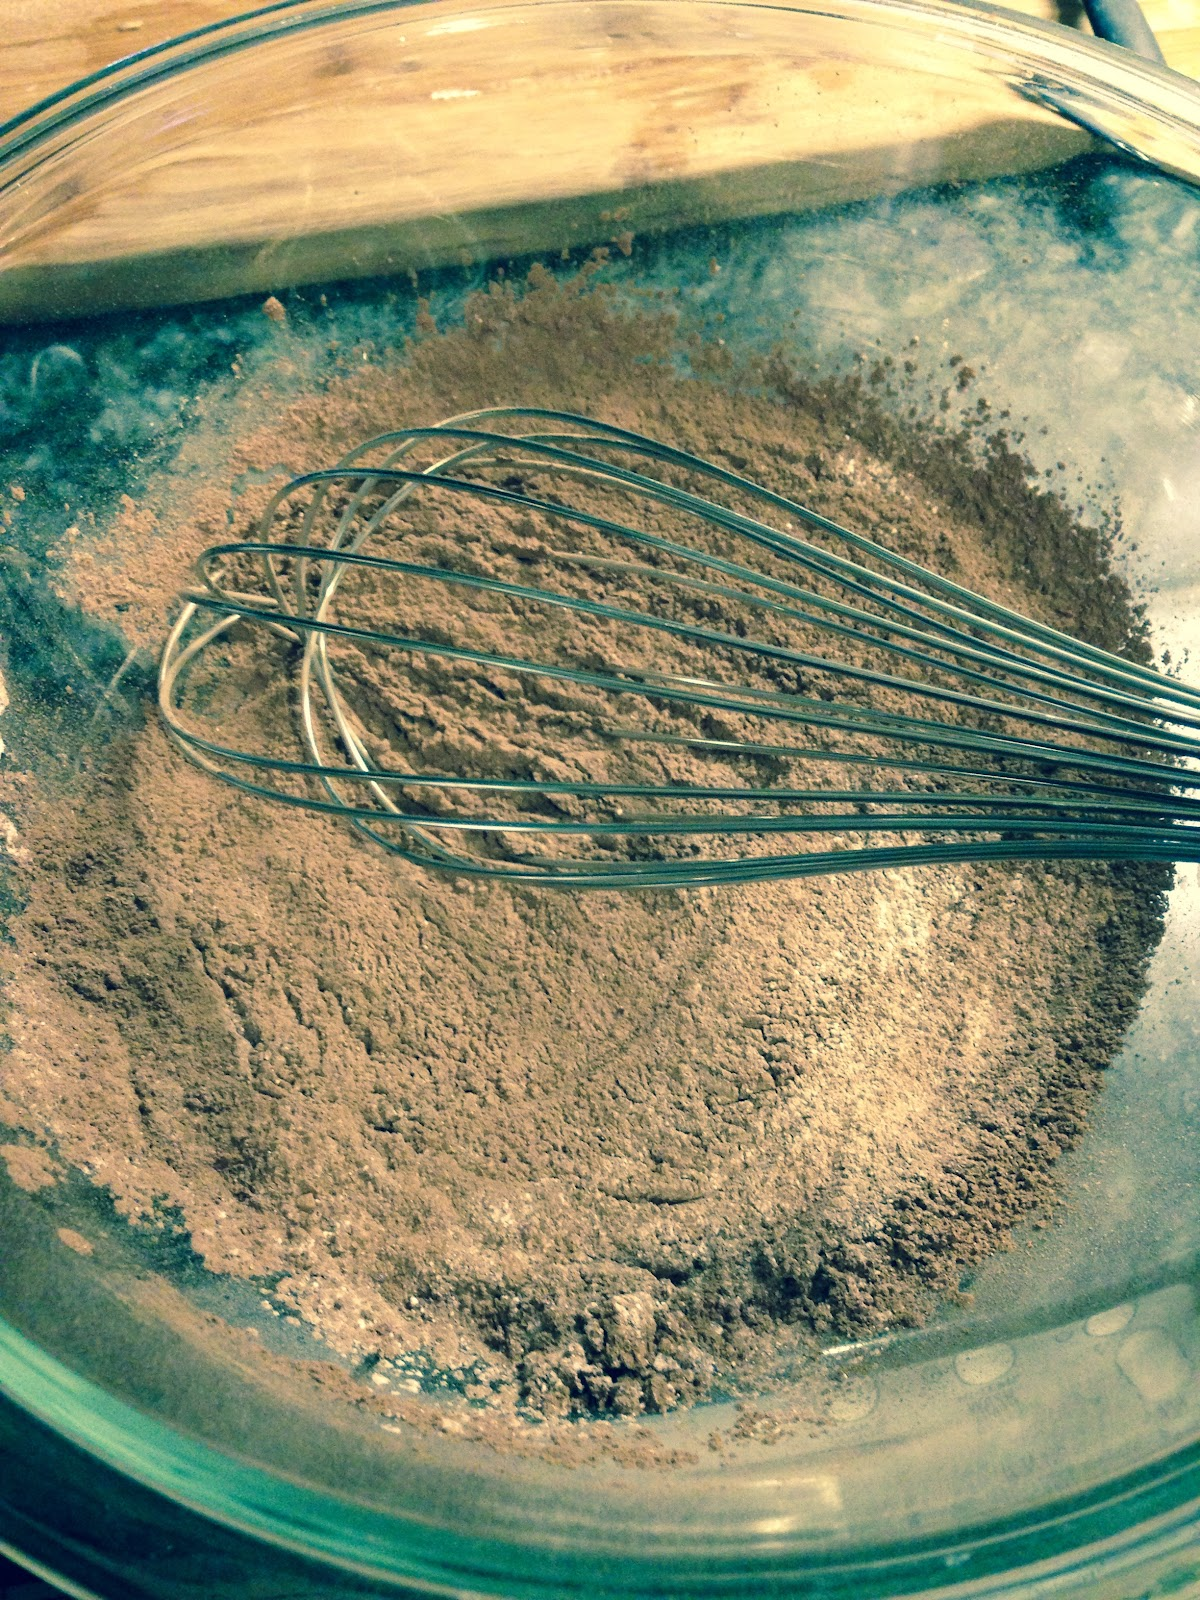 wisking dry ingredients in a bowl